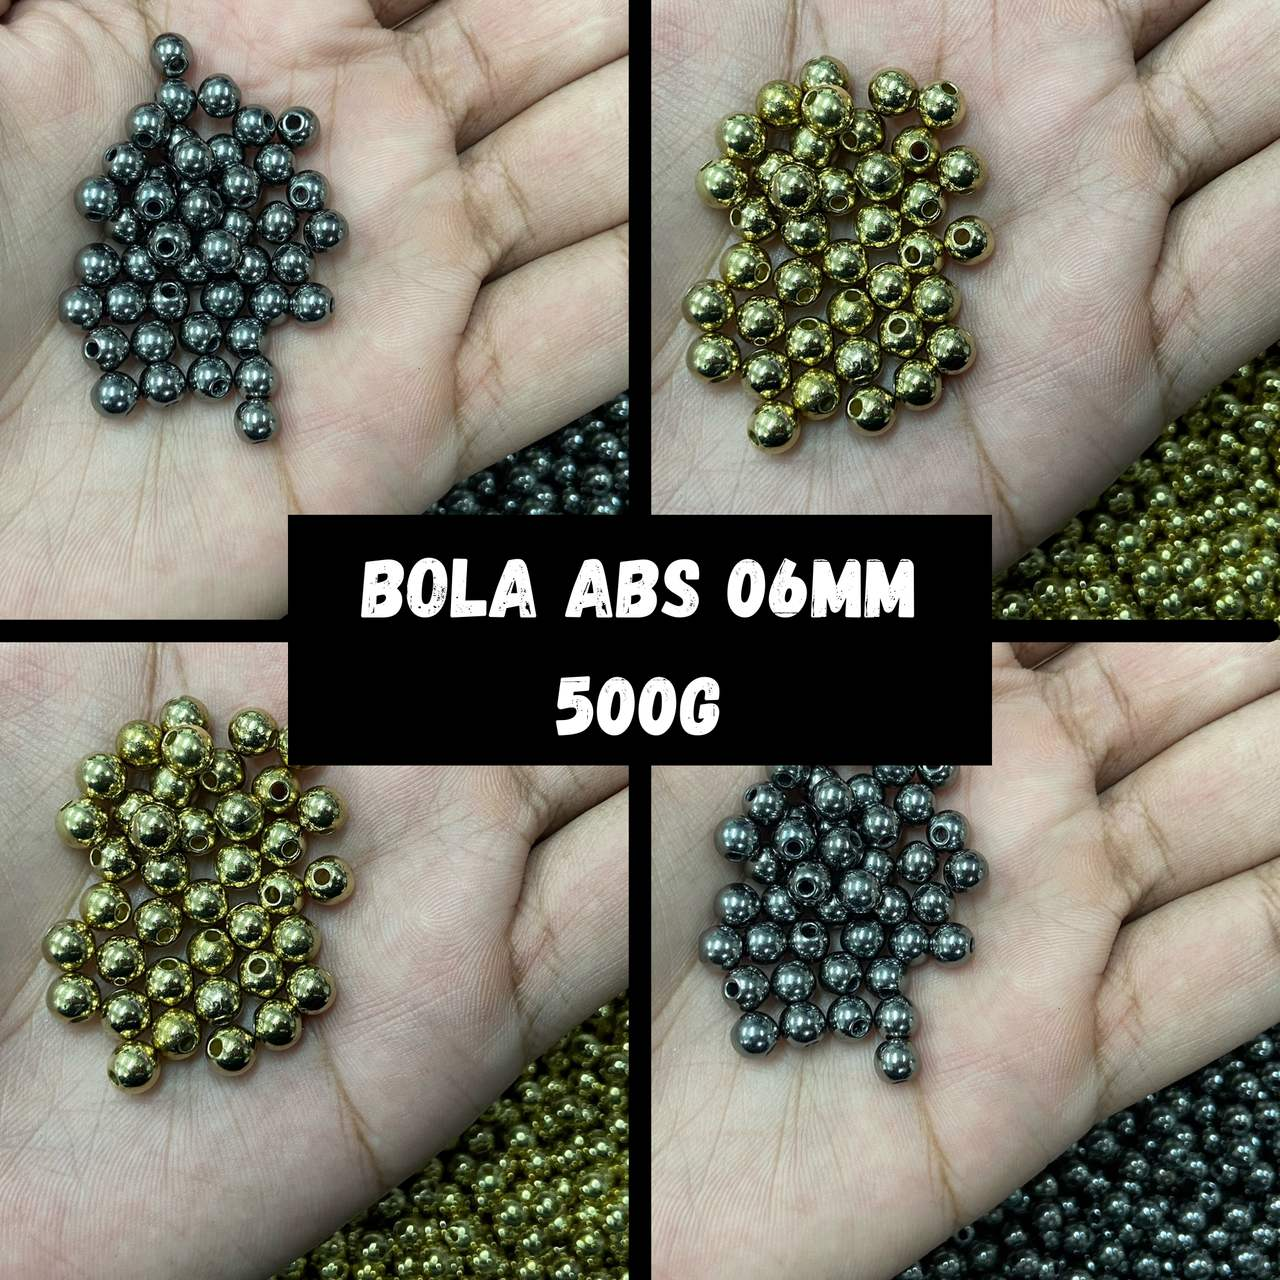 Bola ABS 06mm - 500g